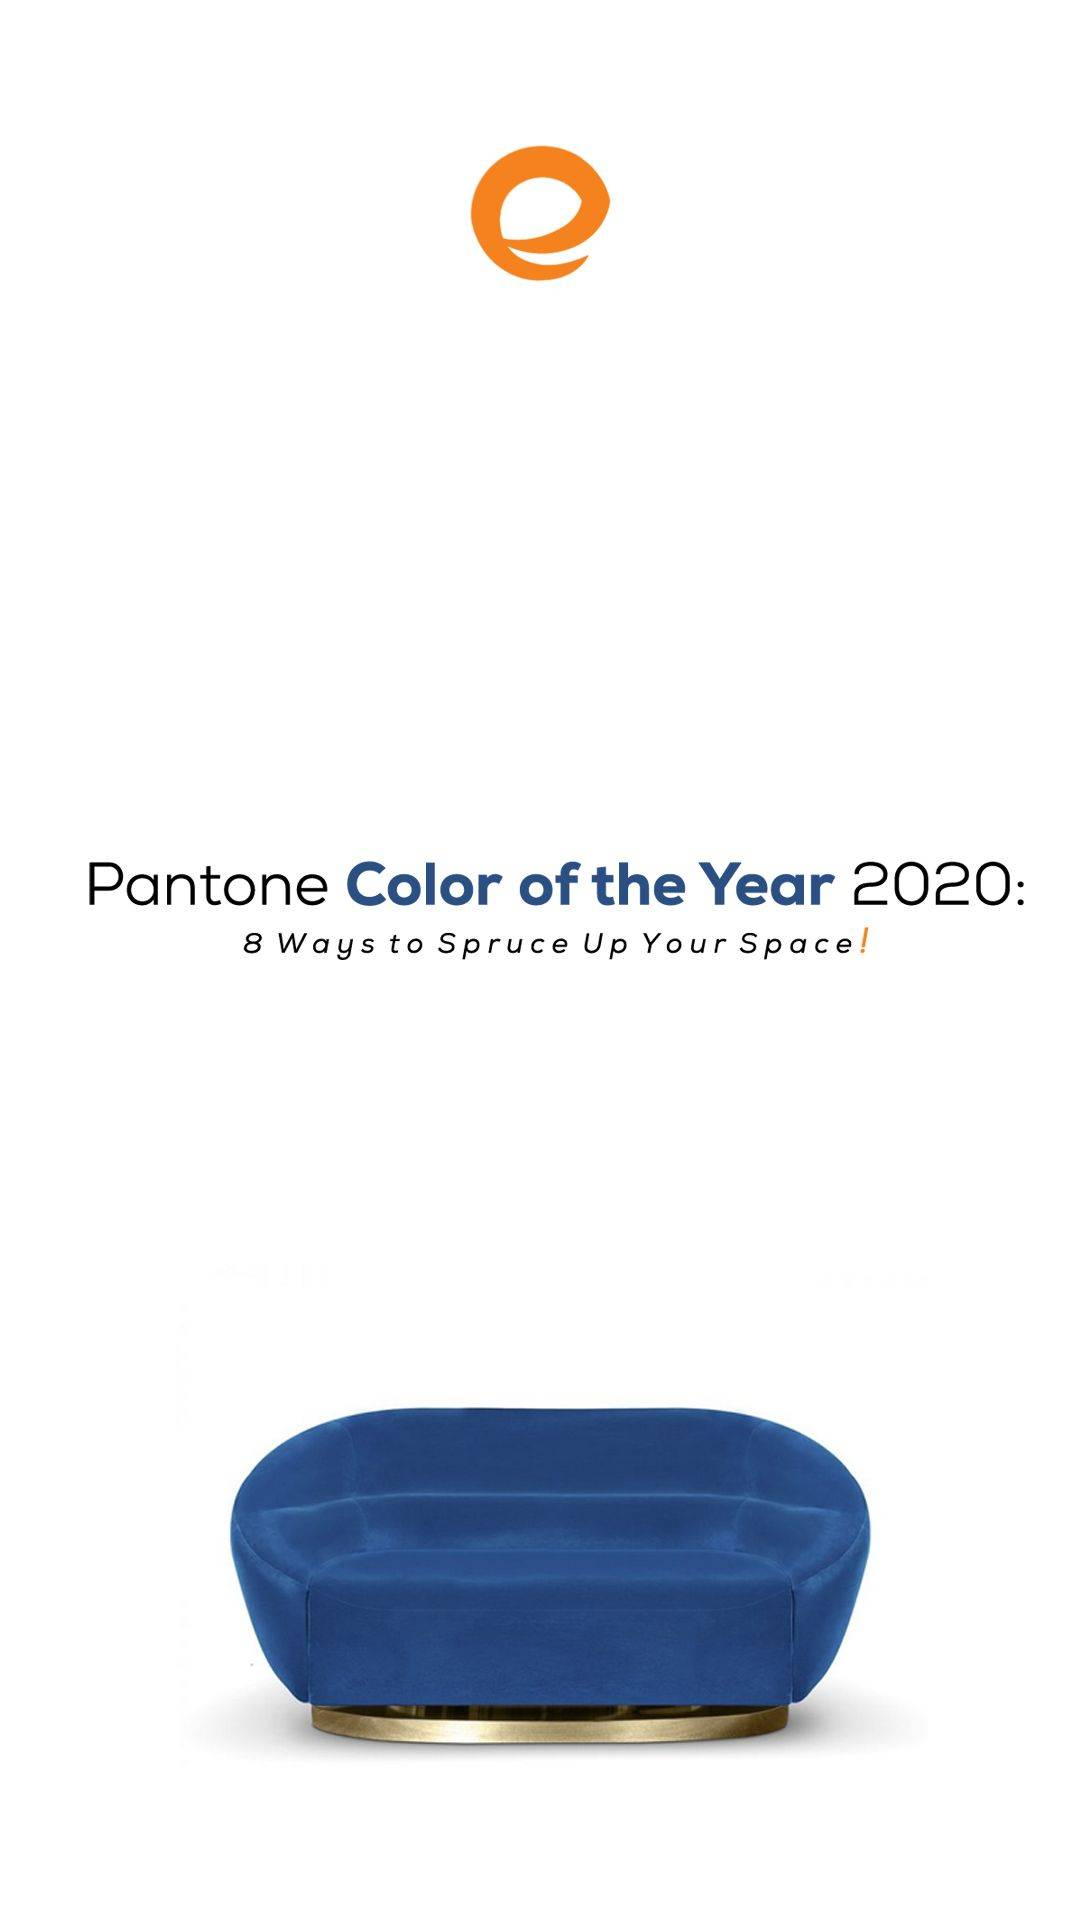 Color Of the Year Inspirational Pantone Color Of the Year 2020 8 Ways to Spruce Up Your